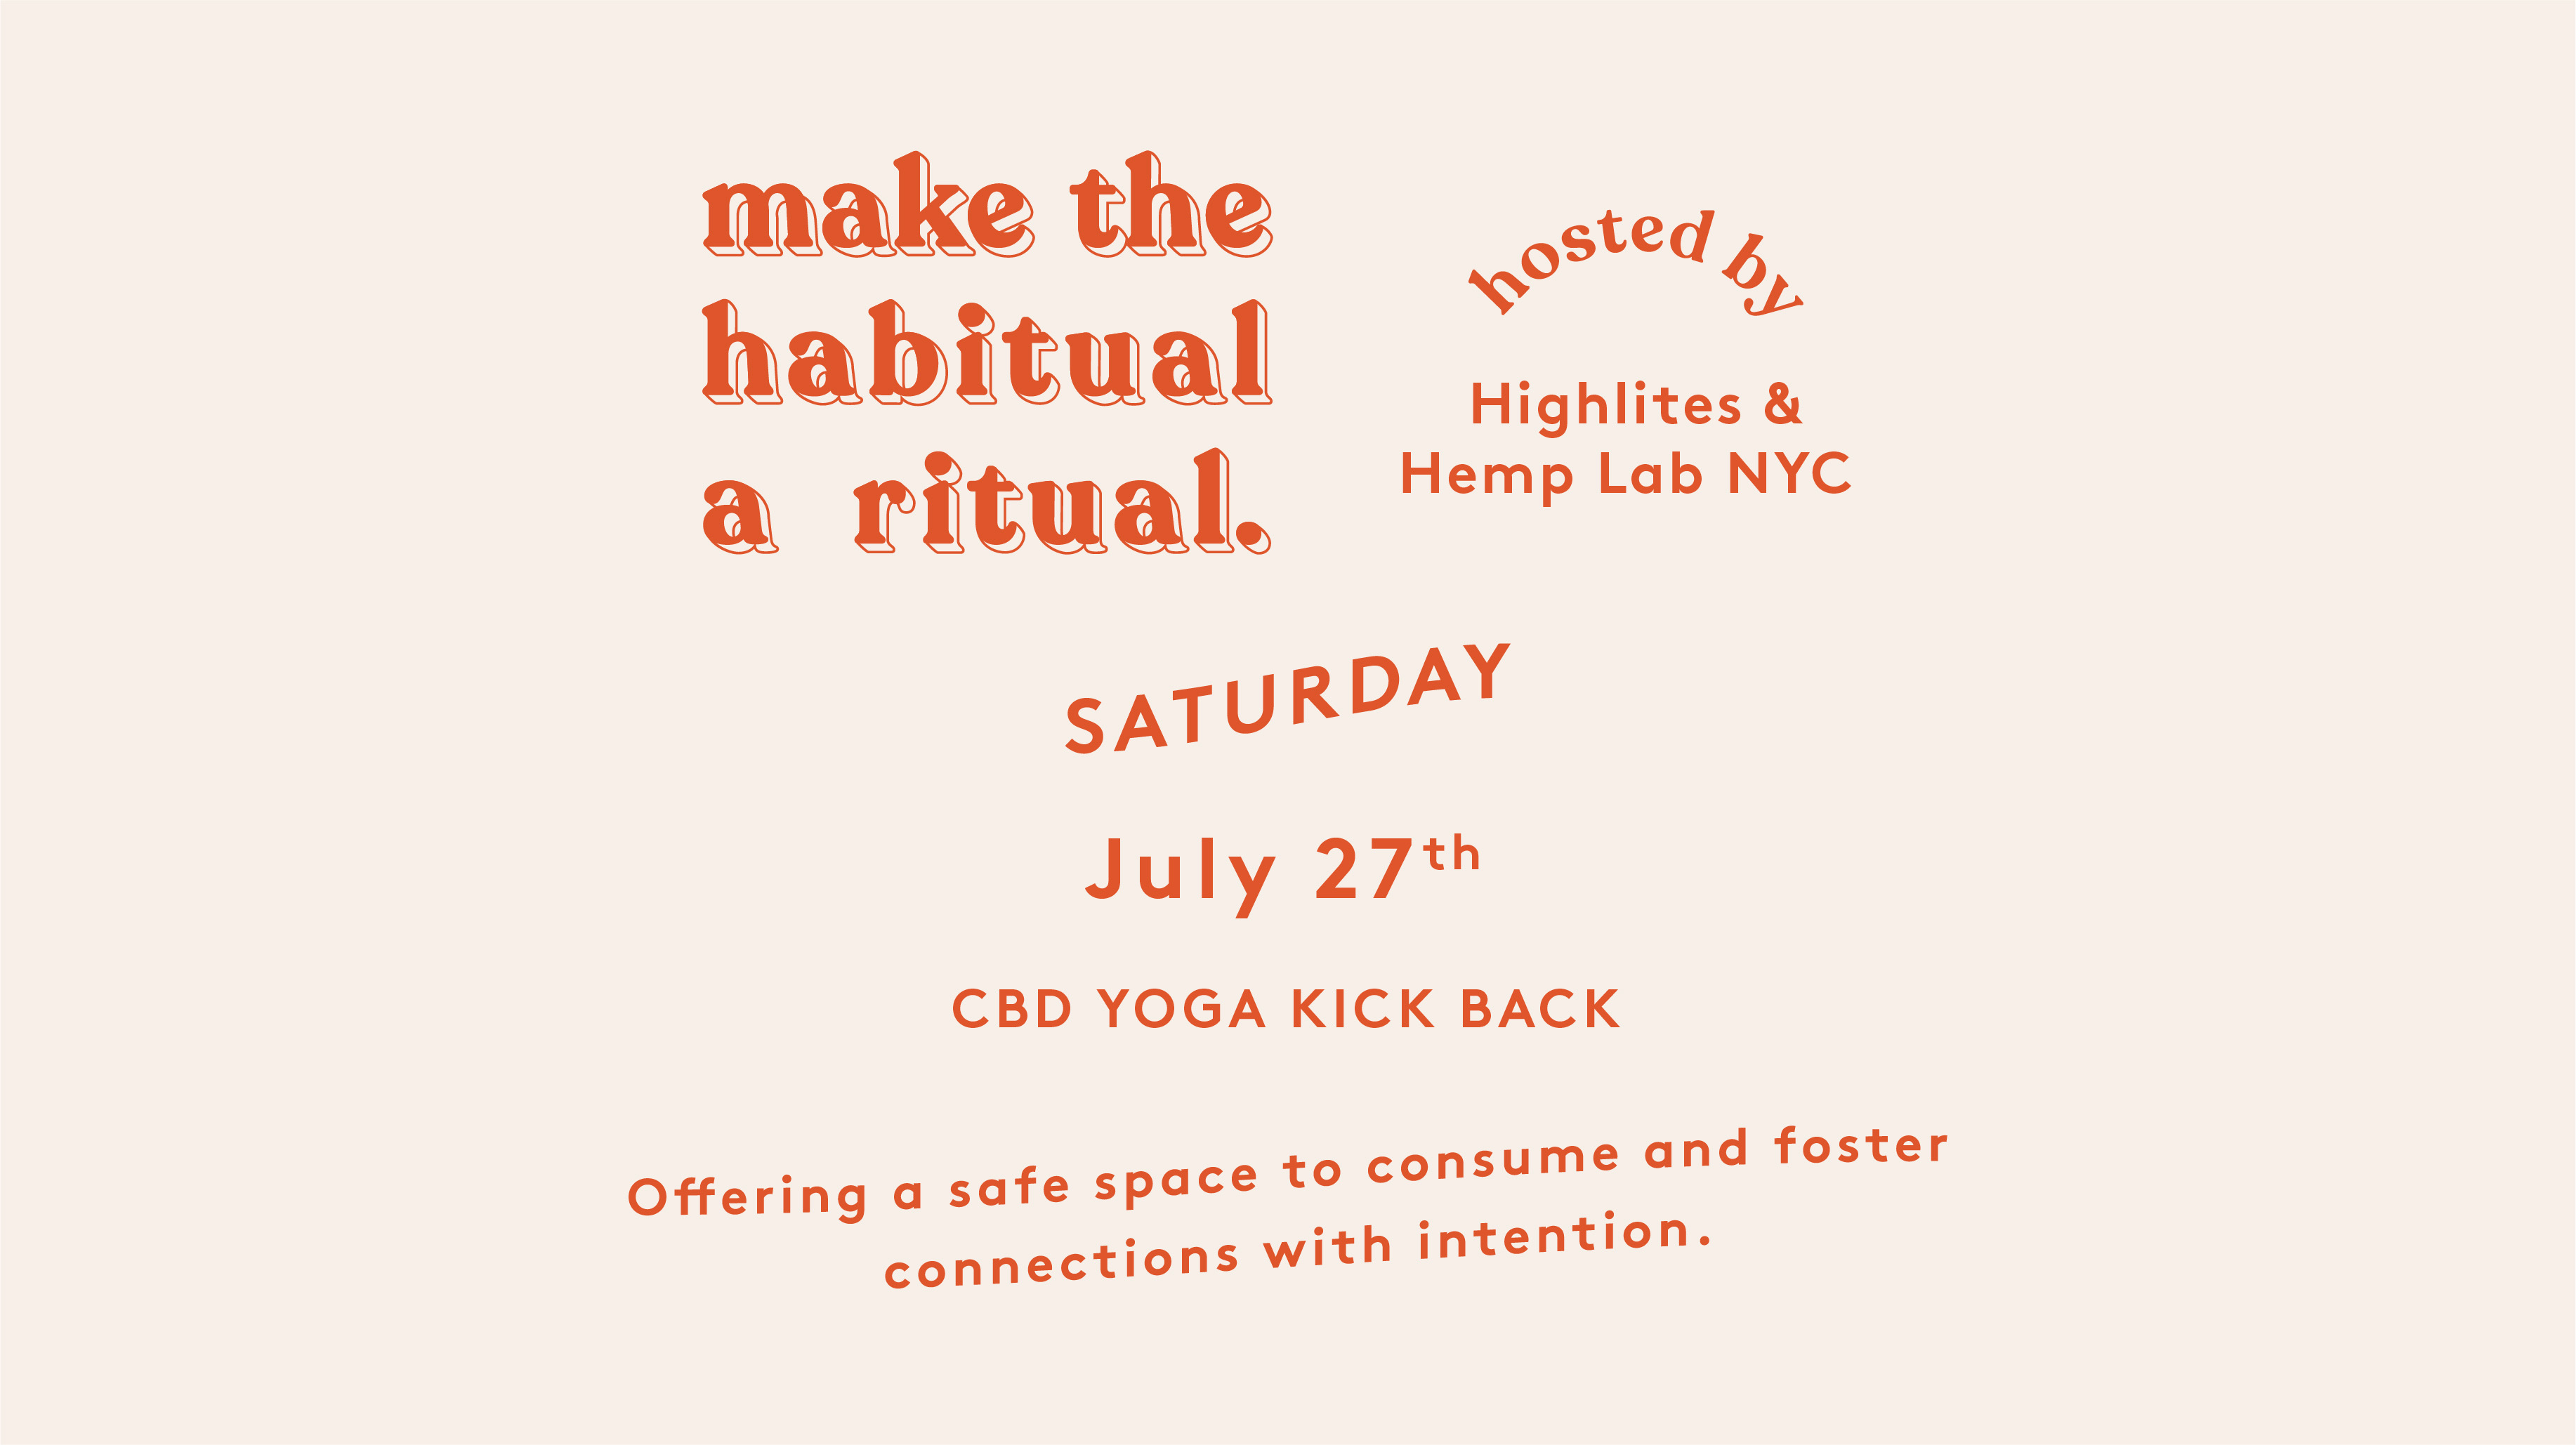 Make the Habitual a Ritual: CBD Yoga Kick-Back